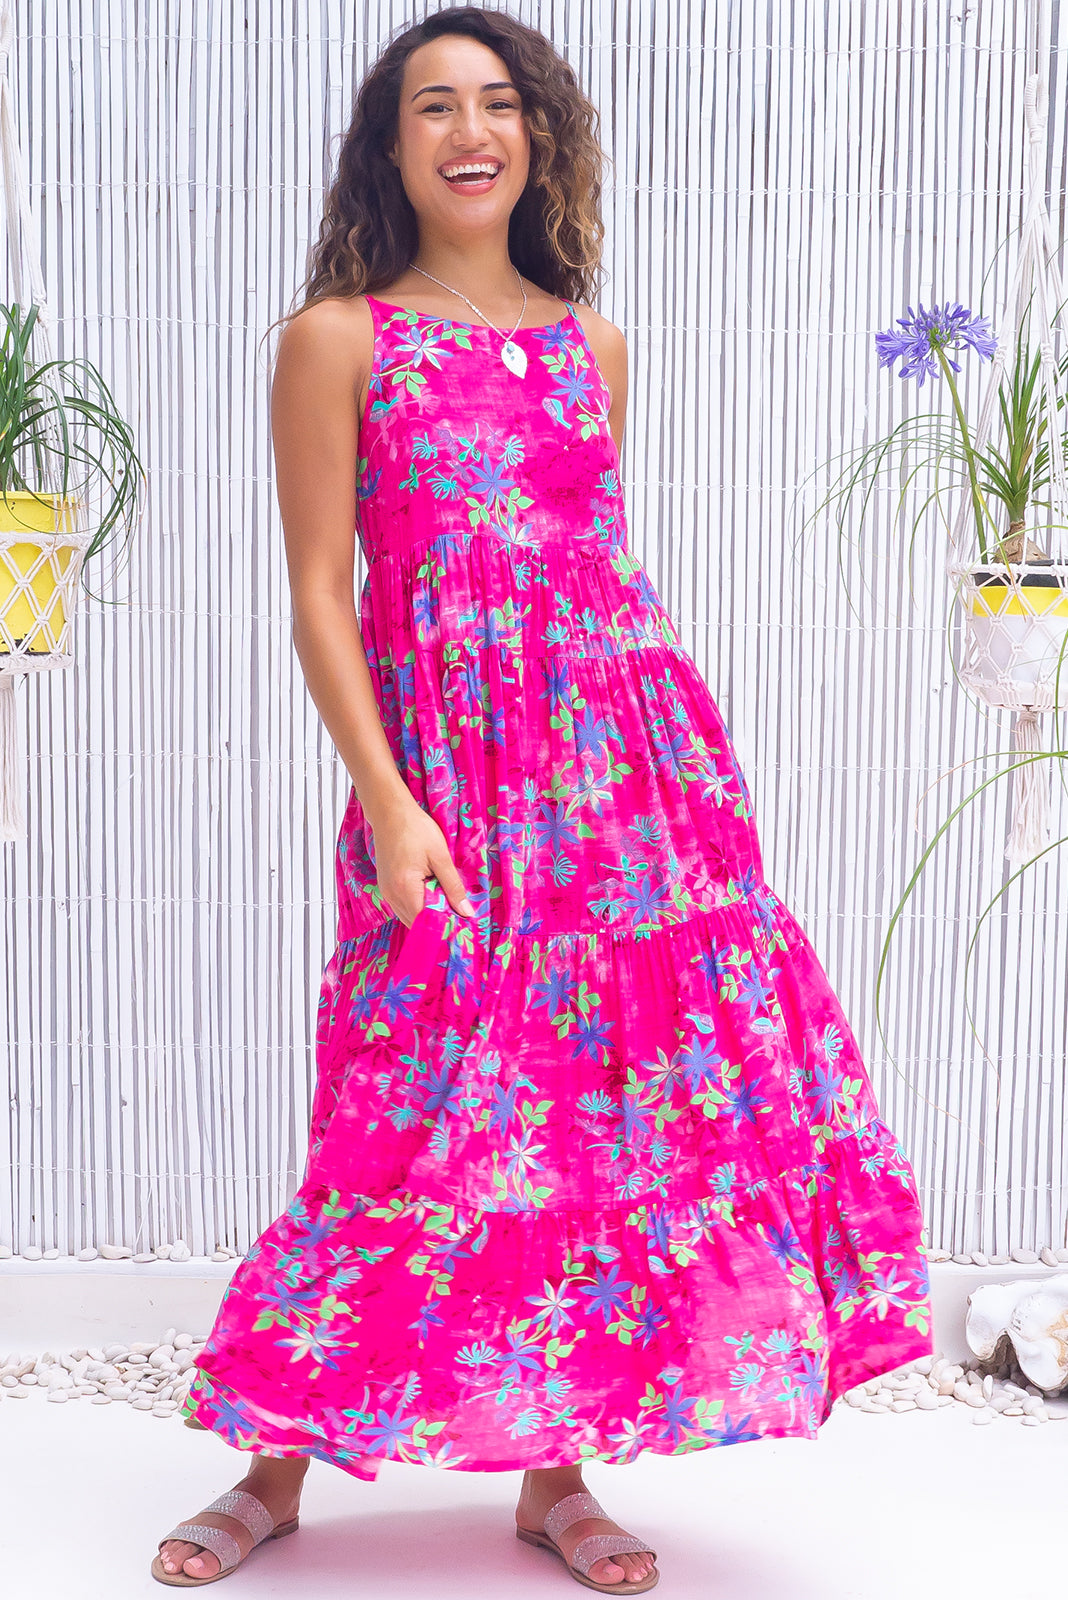 The Lulu Darling Panama Pink Maxi Dress features high neck with thin straps, tiered skirt falling from under bust, deep side pockets and 100% rayon in vibrant pink base with wash effect and blue/green florals.